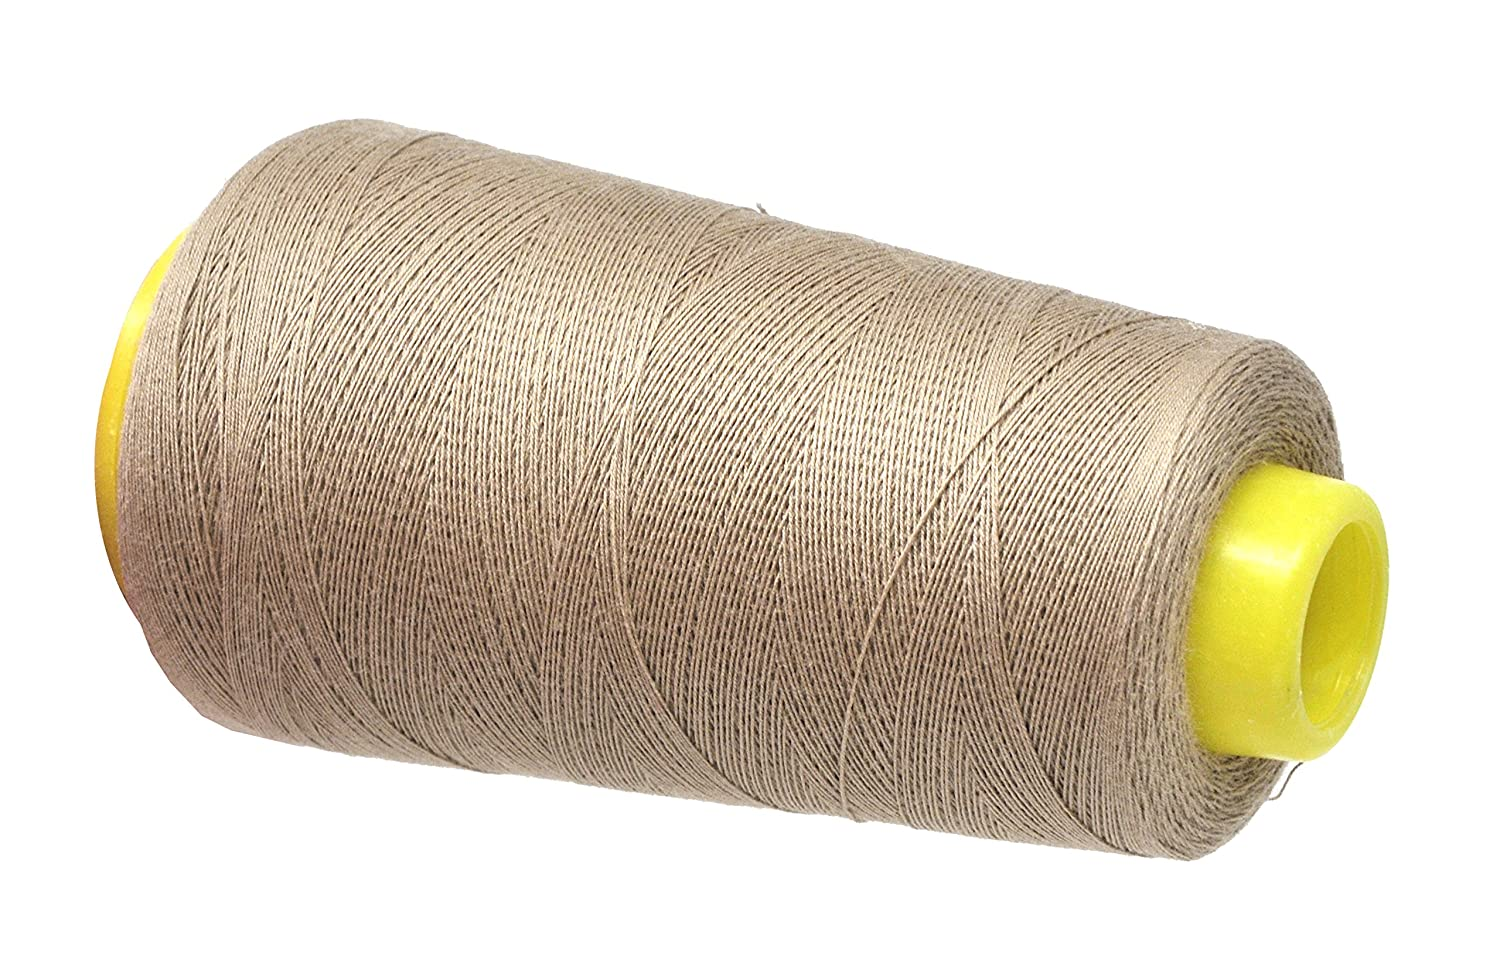 2 Rolls 2400 Yards, Gold 100 Percent Natural Mercerized Mandala Crafts Quilting Cotton Thread Cone for Machine and Hand Sewing 50 wt